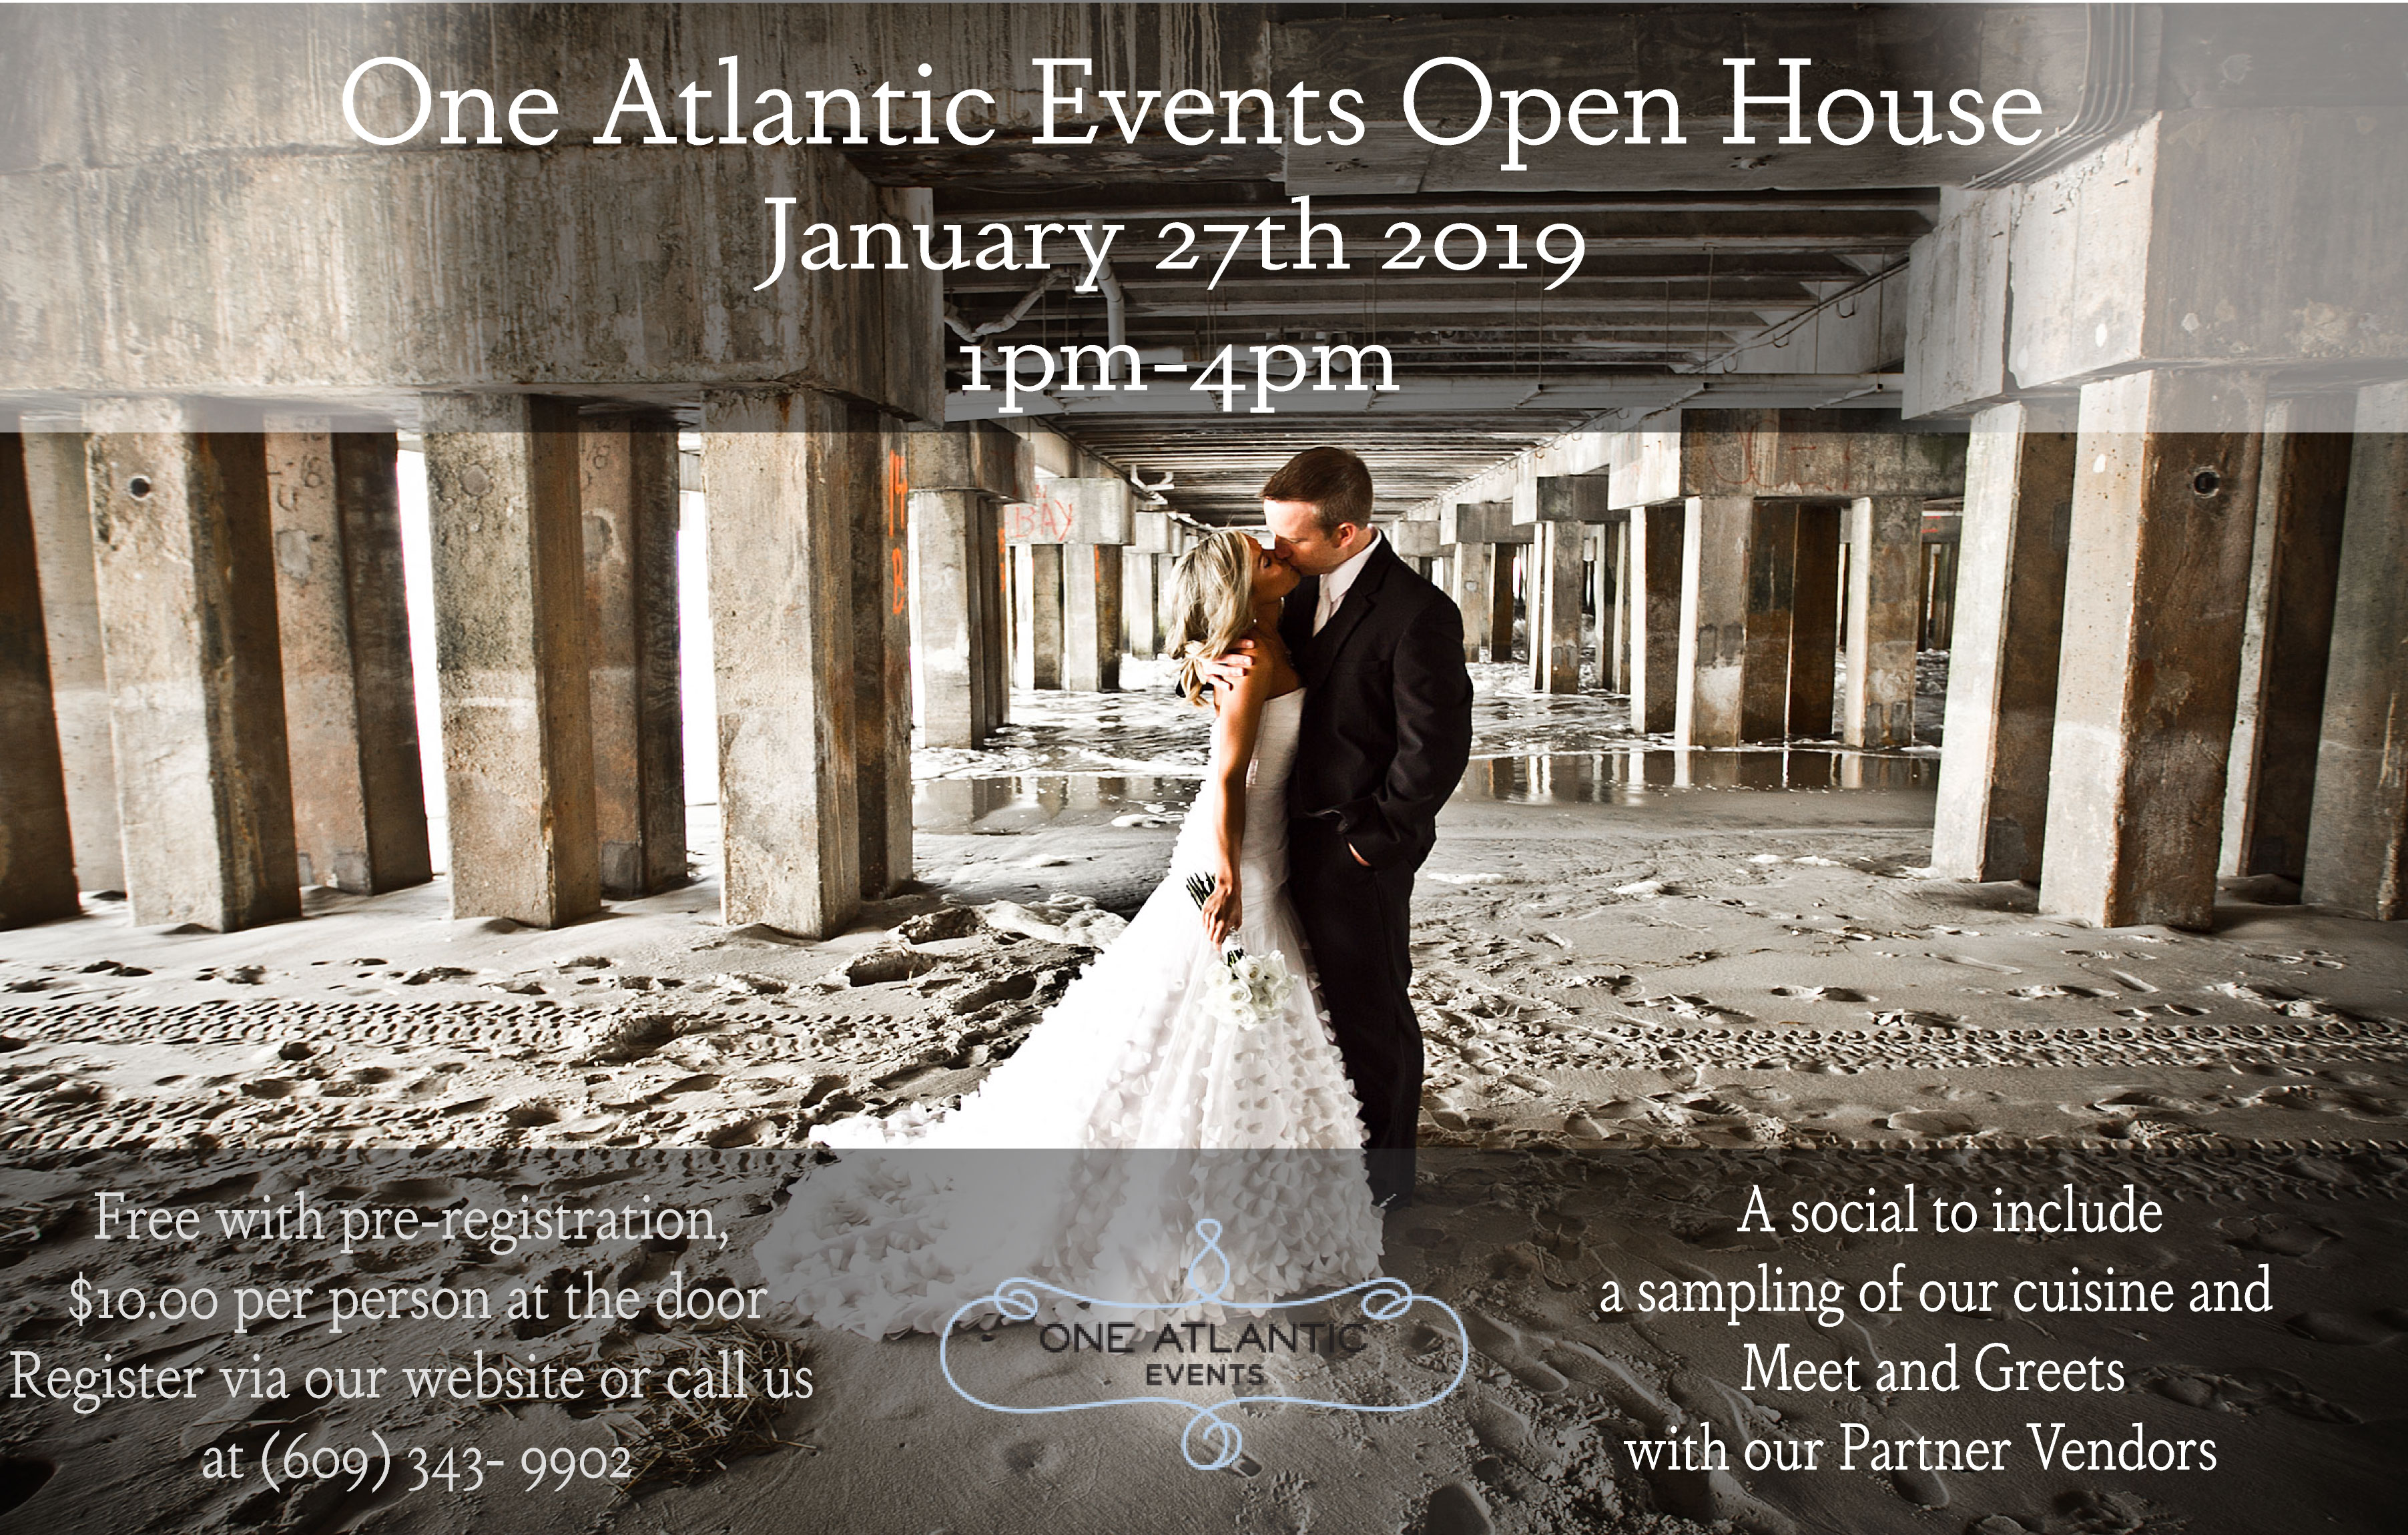 bridal open house 2019 - 2019 Open House